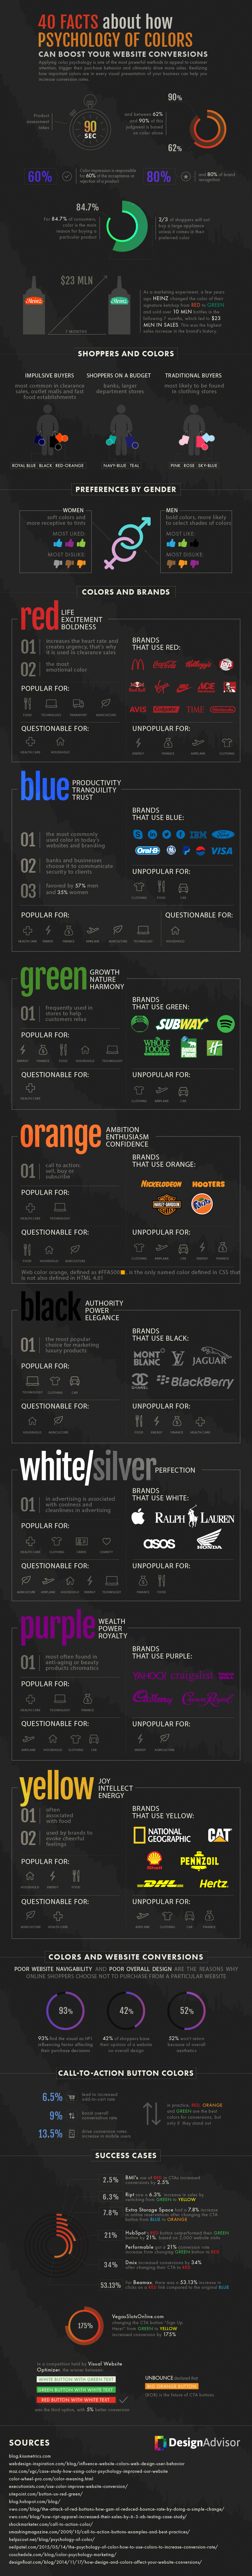 Color Psychology Infographic TrueList